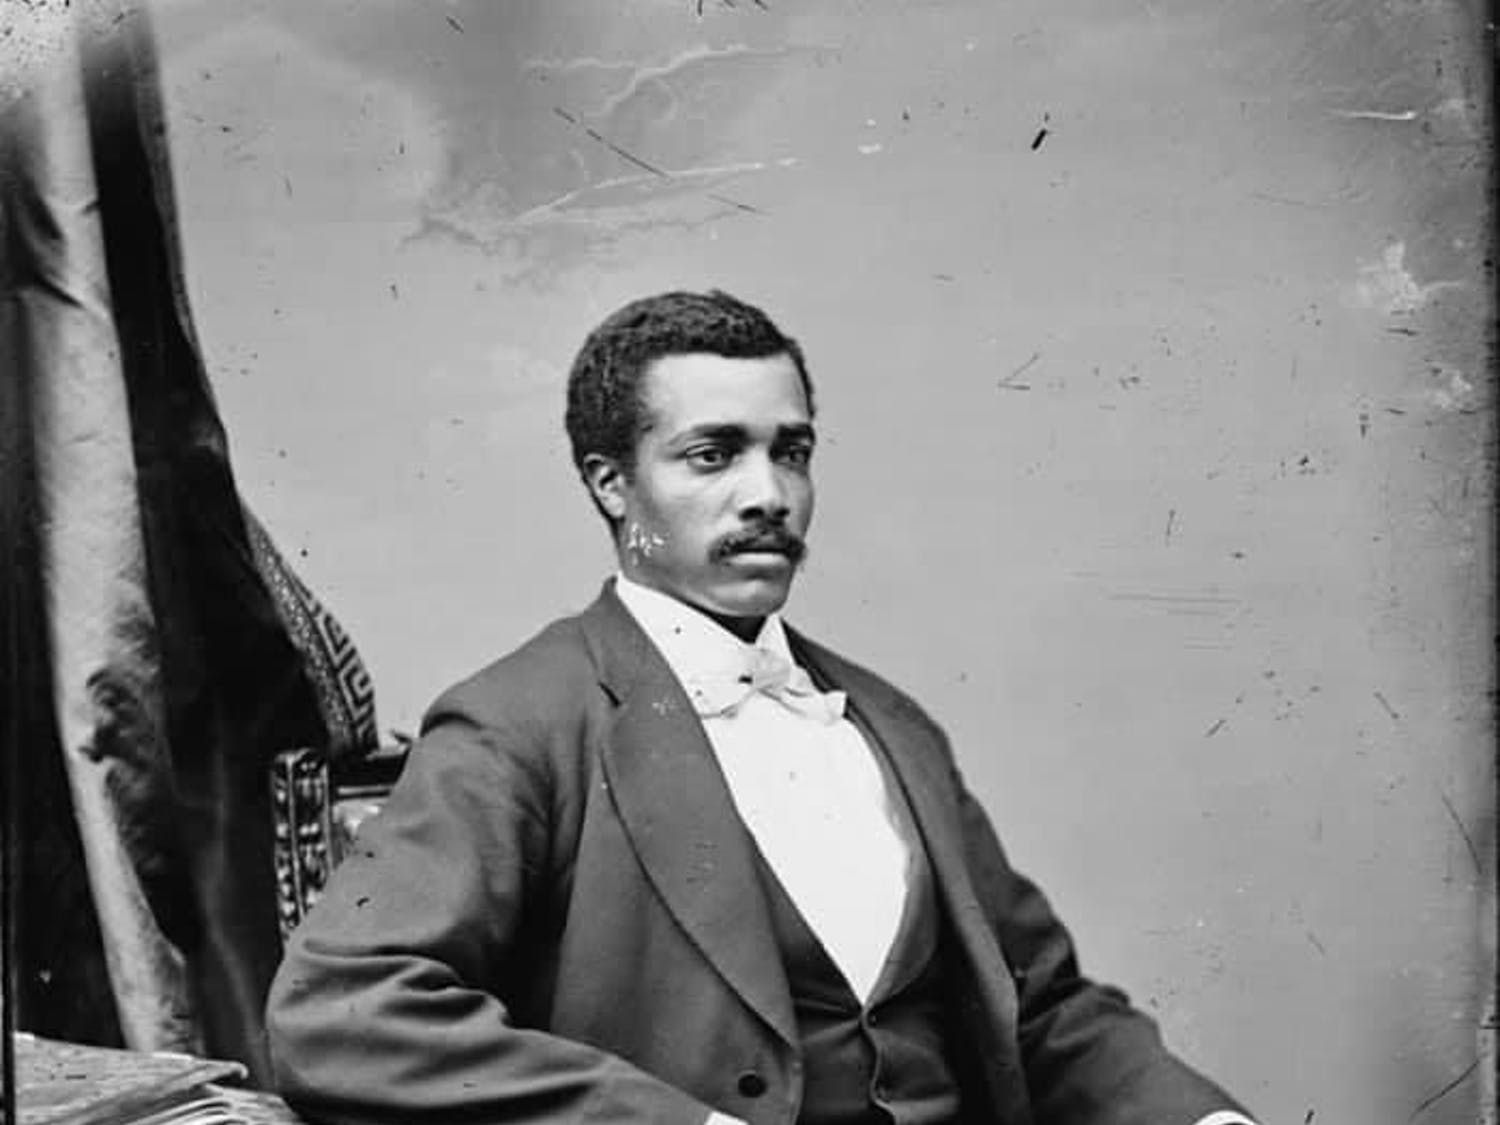 Josiah T. Walls fought in the Civil War, served as the mayor of Gainesville and was Florida's first African American representative in Congress.